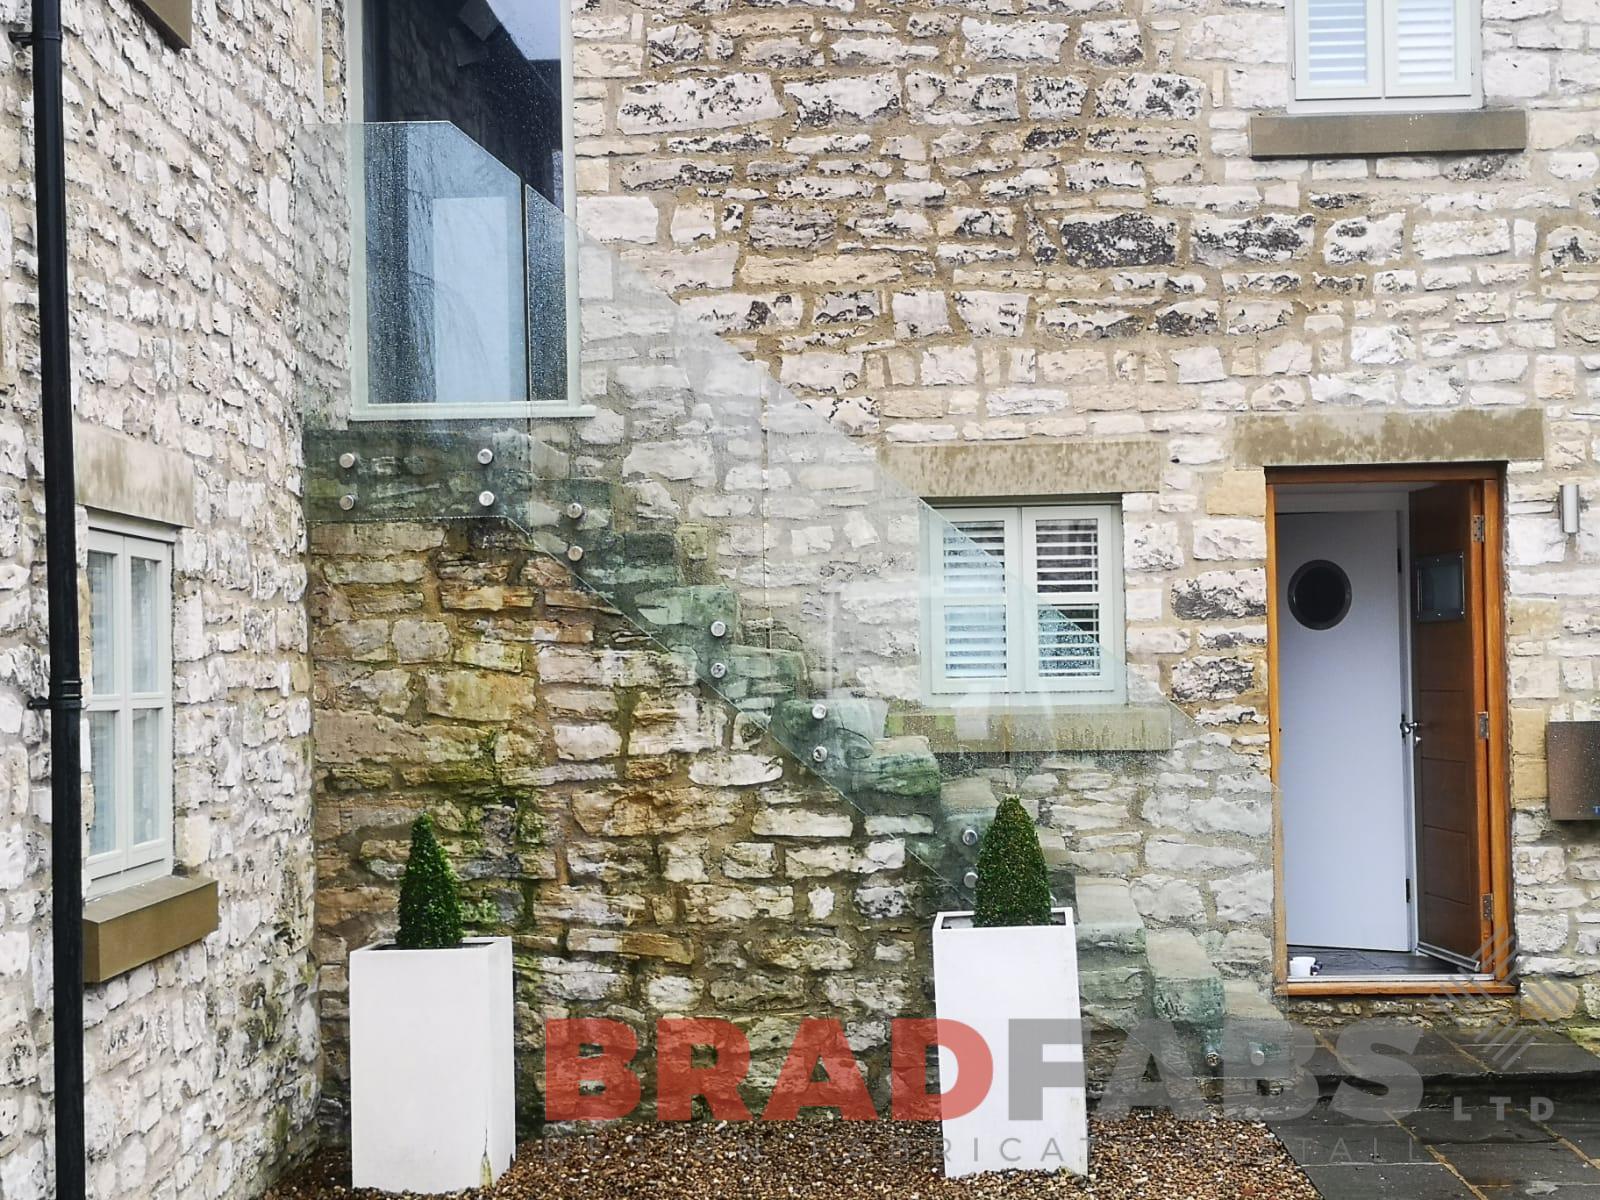 bespoke 17.5 mm laminated glass balustrade for external domestic property stone steps by Bradfabs Ltd